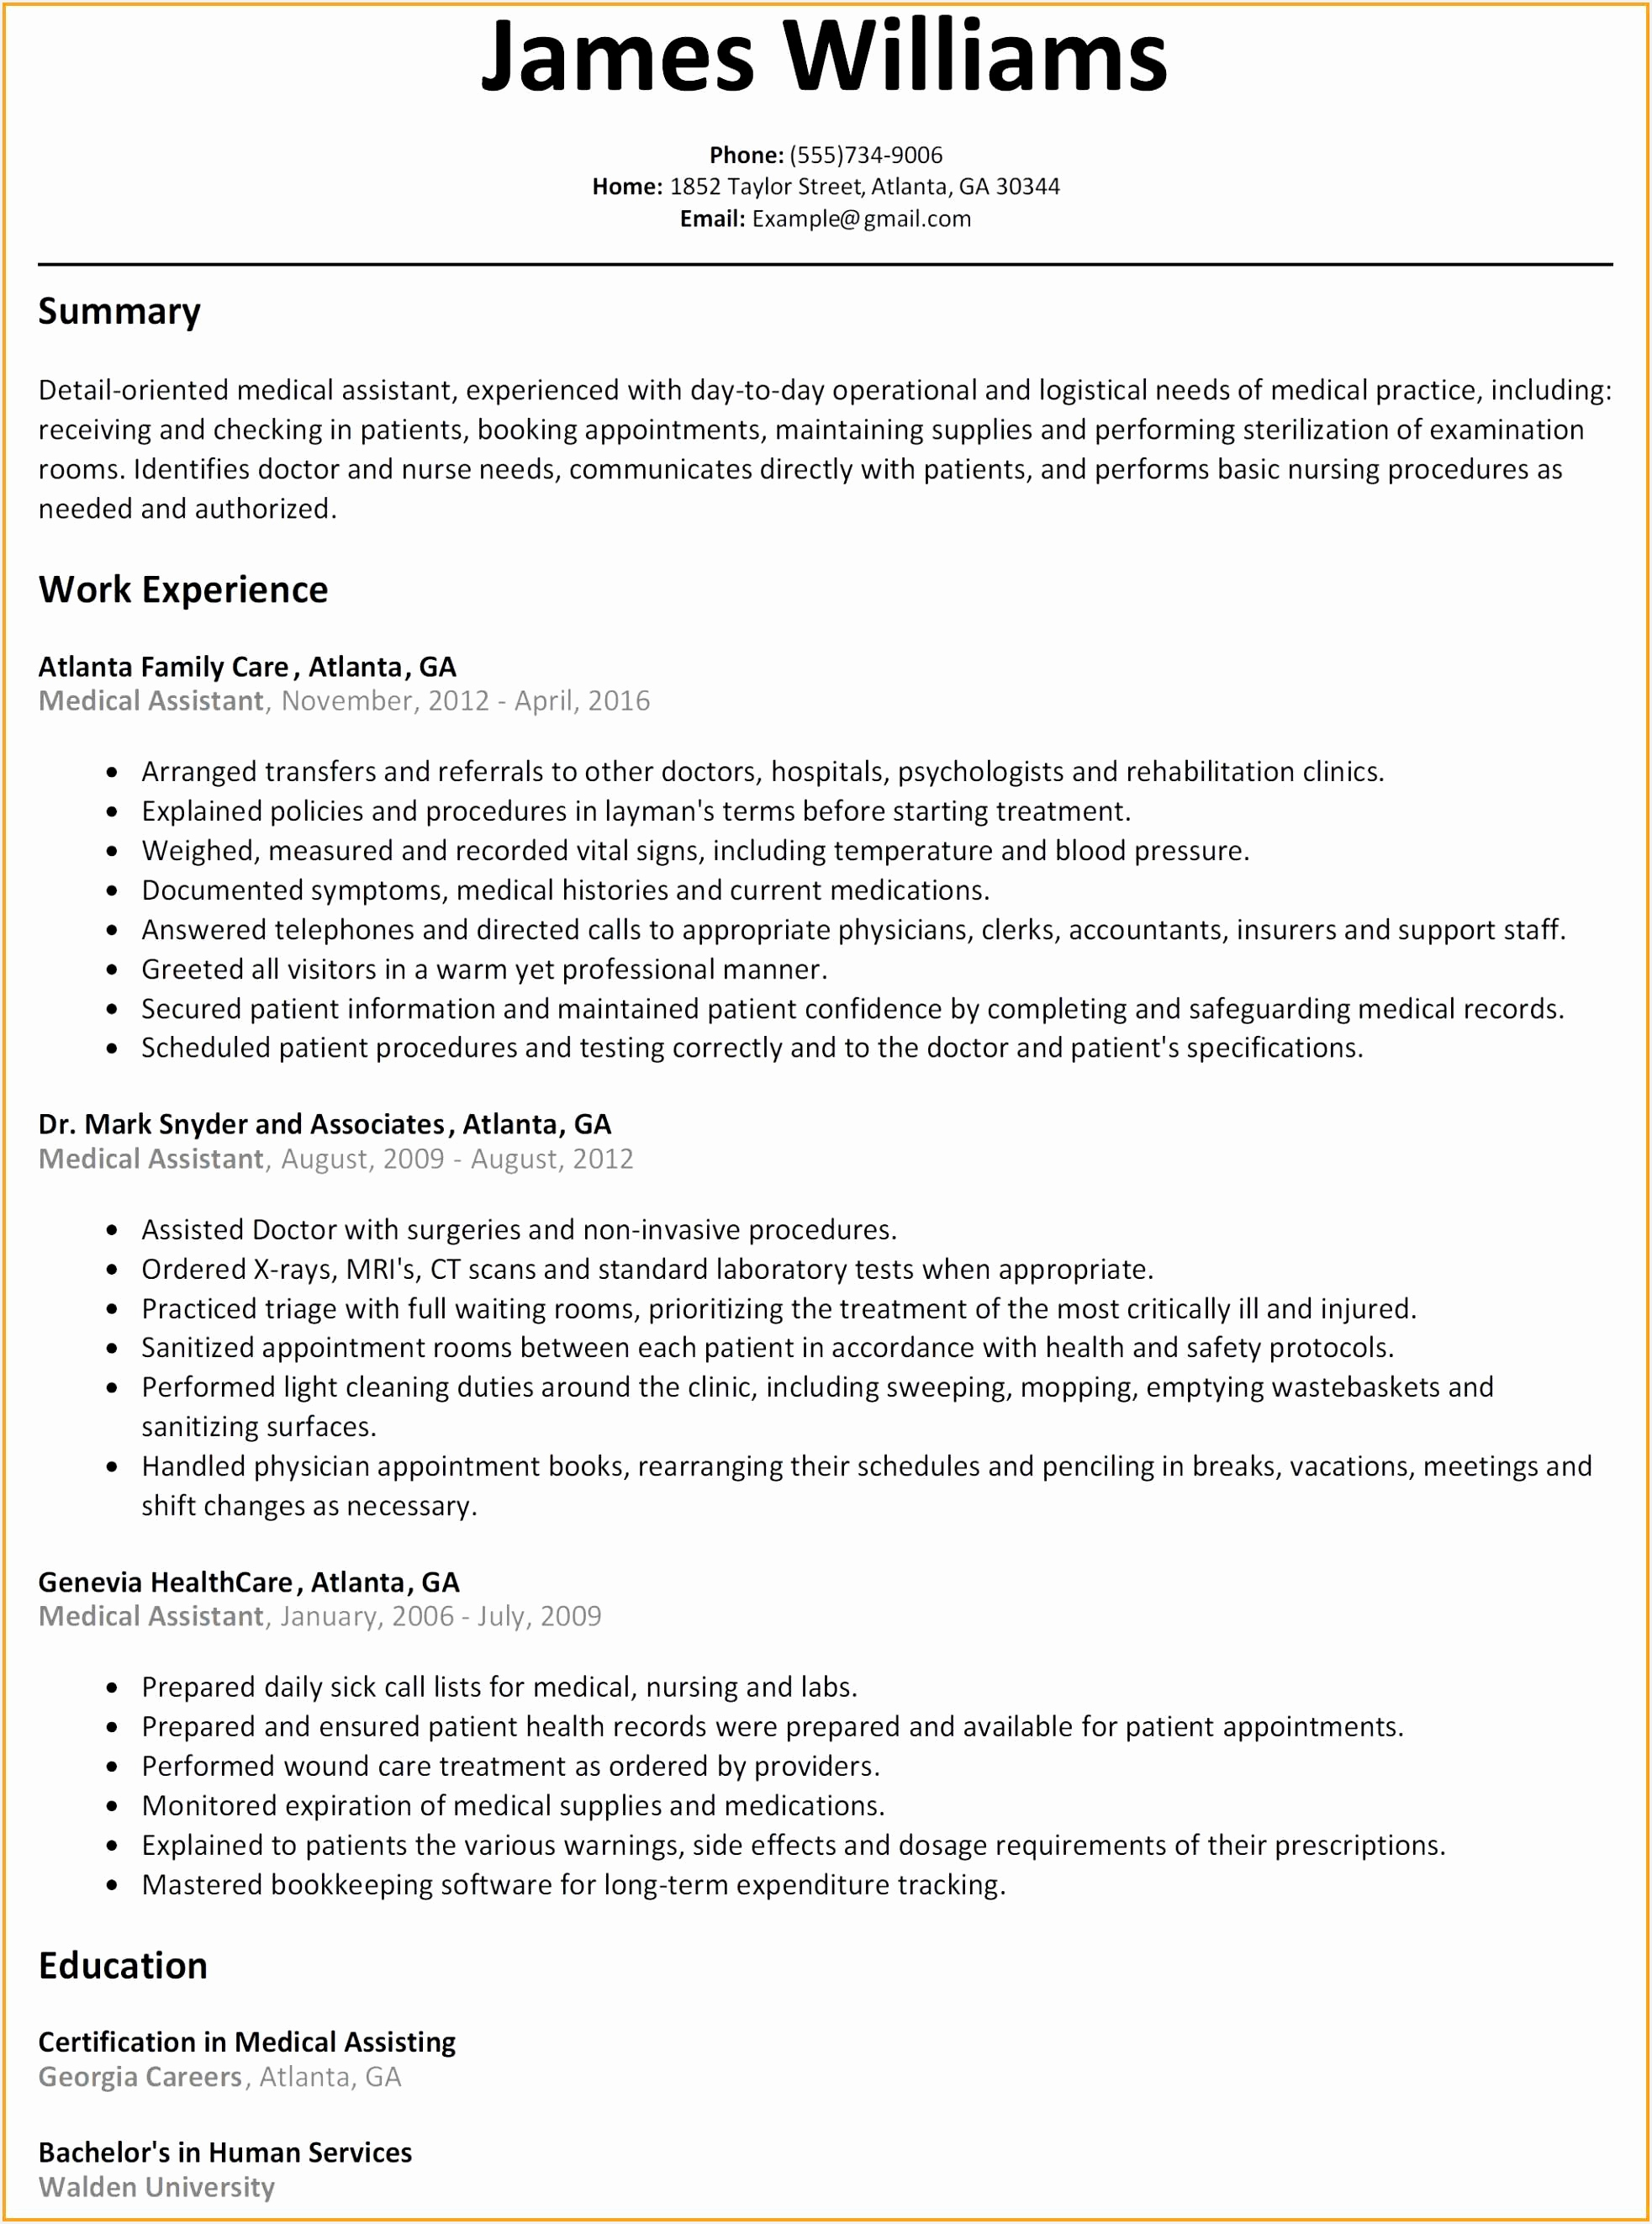 Professional Resume Template Word Resume Template Free Word New Od Specialist Sample Resume Resume for26451965